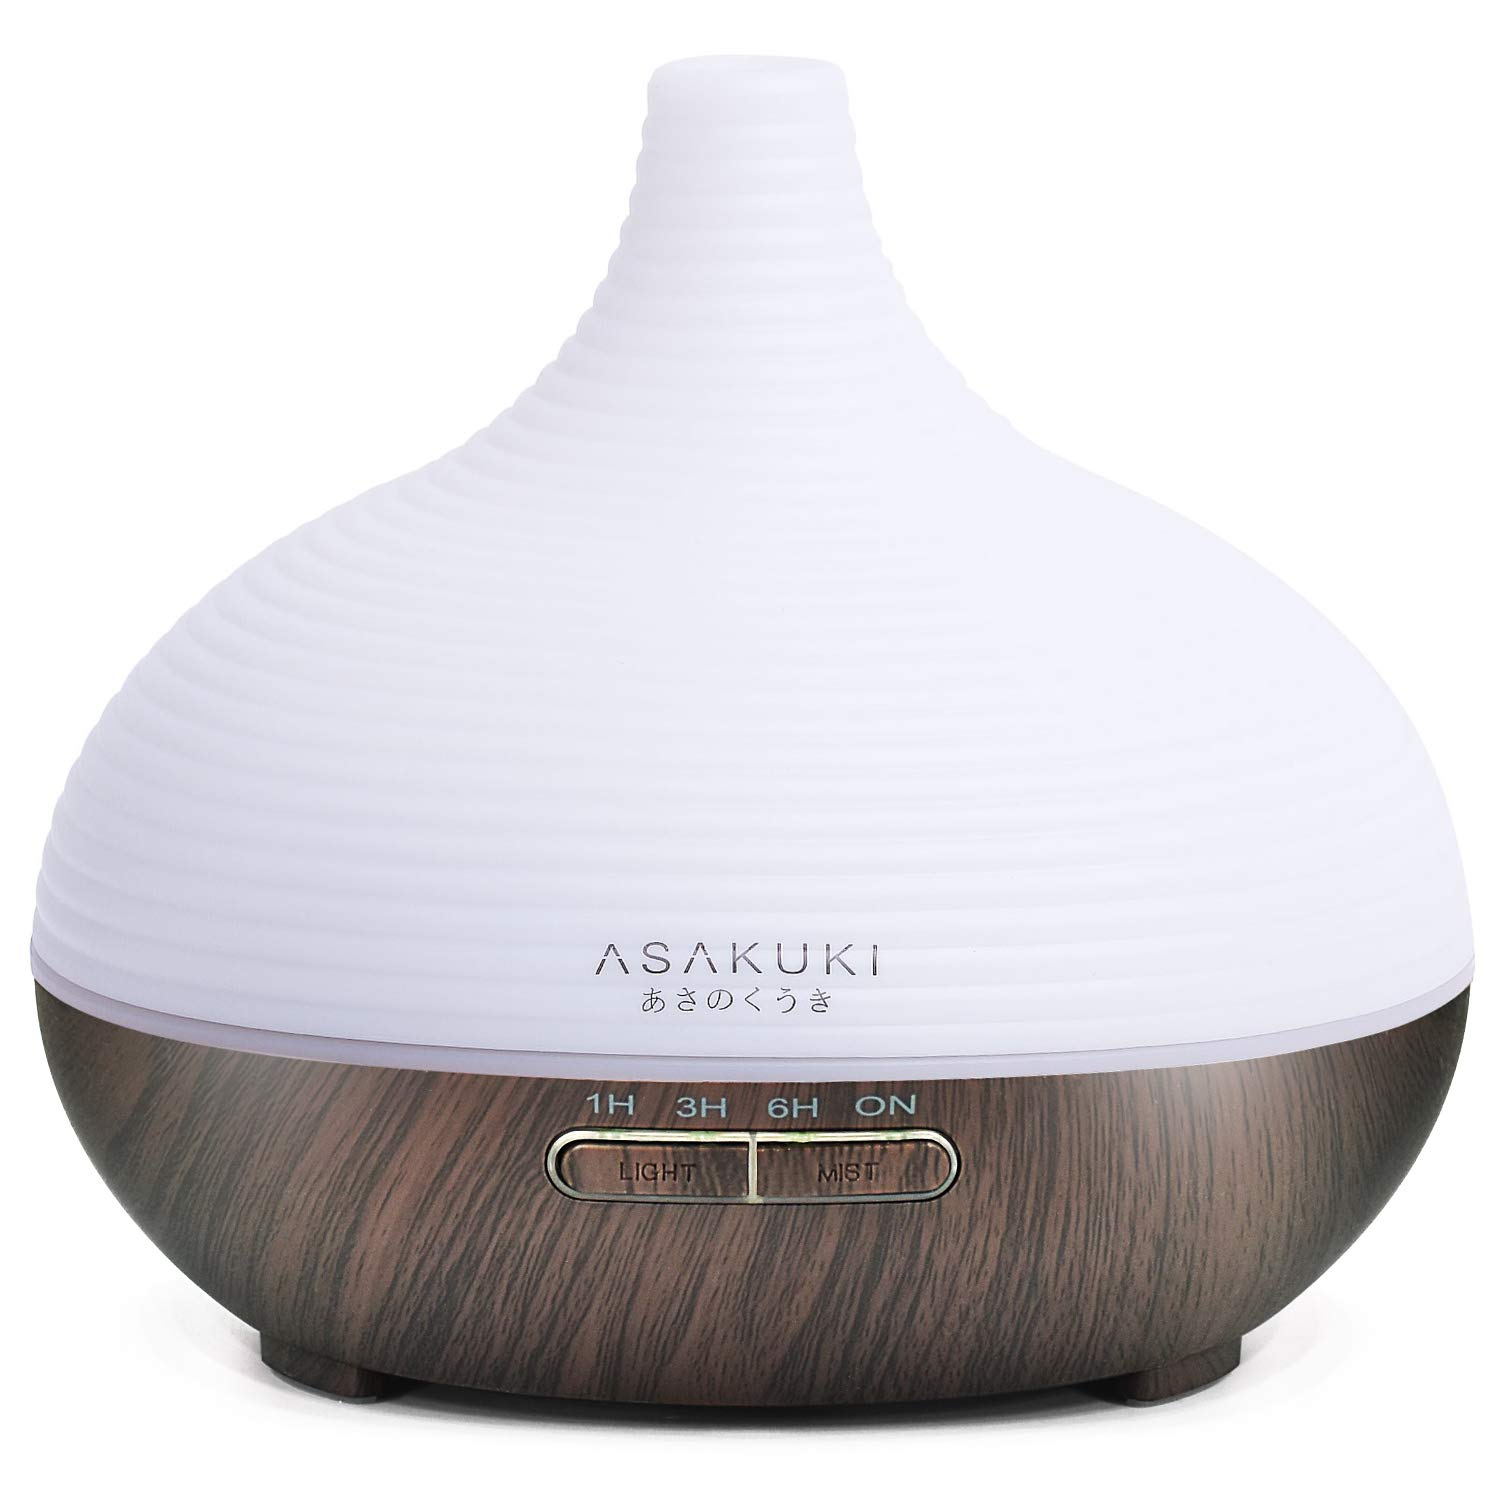 ASAKUKI 300ML Premium, Essential Oil Diffuser, Quiet 5-In-1 Humidifier, Natural Home Fragrance Diffuser with 7 LED Color Changing Light and Easy to Use